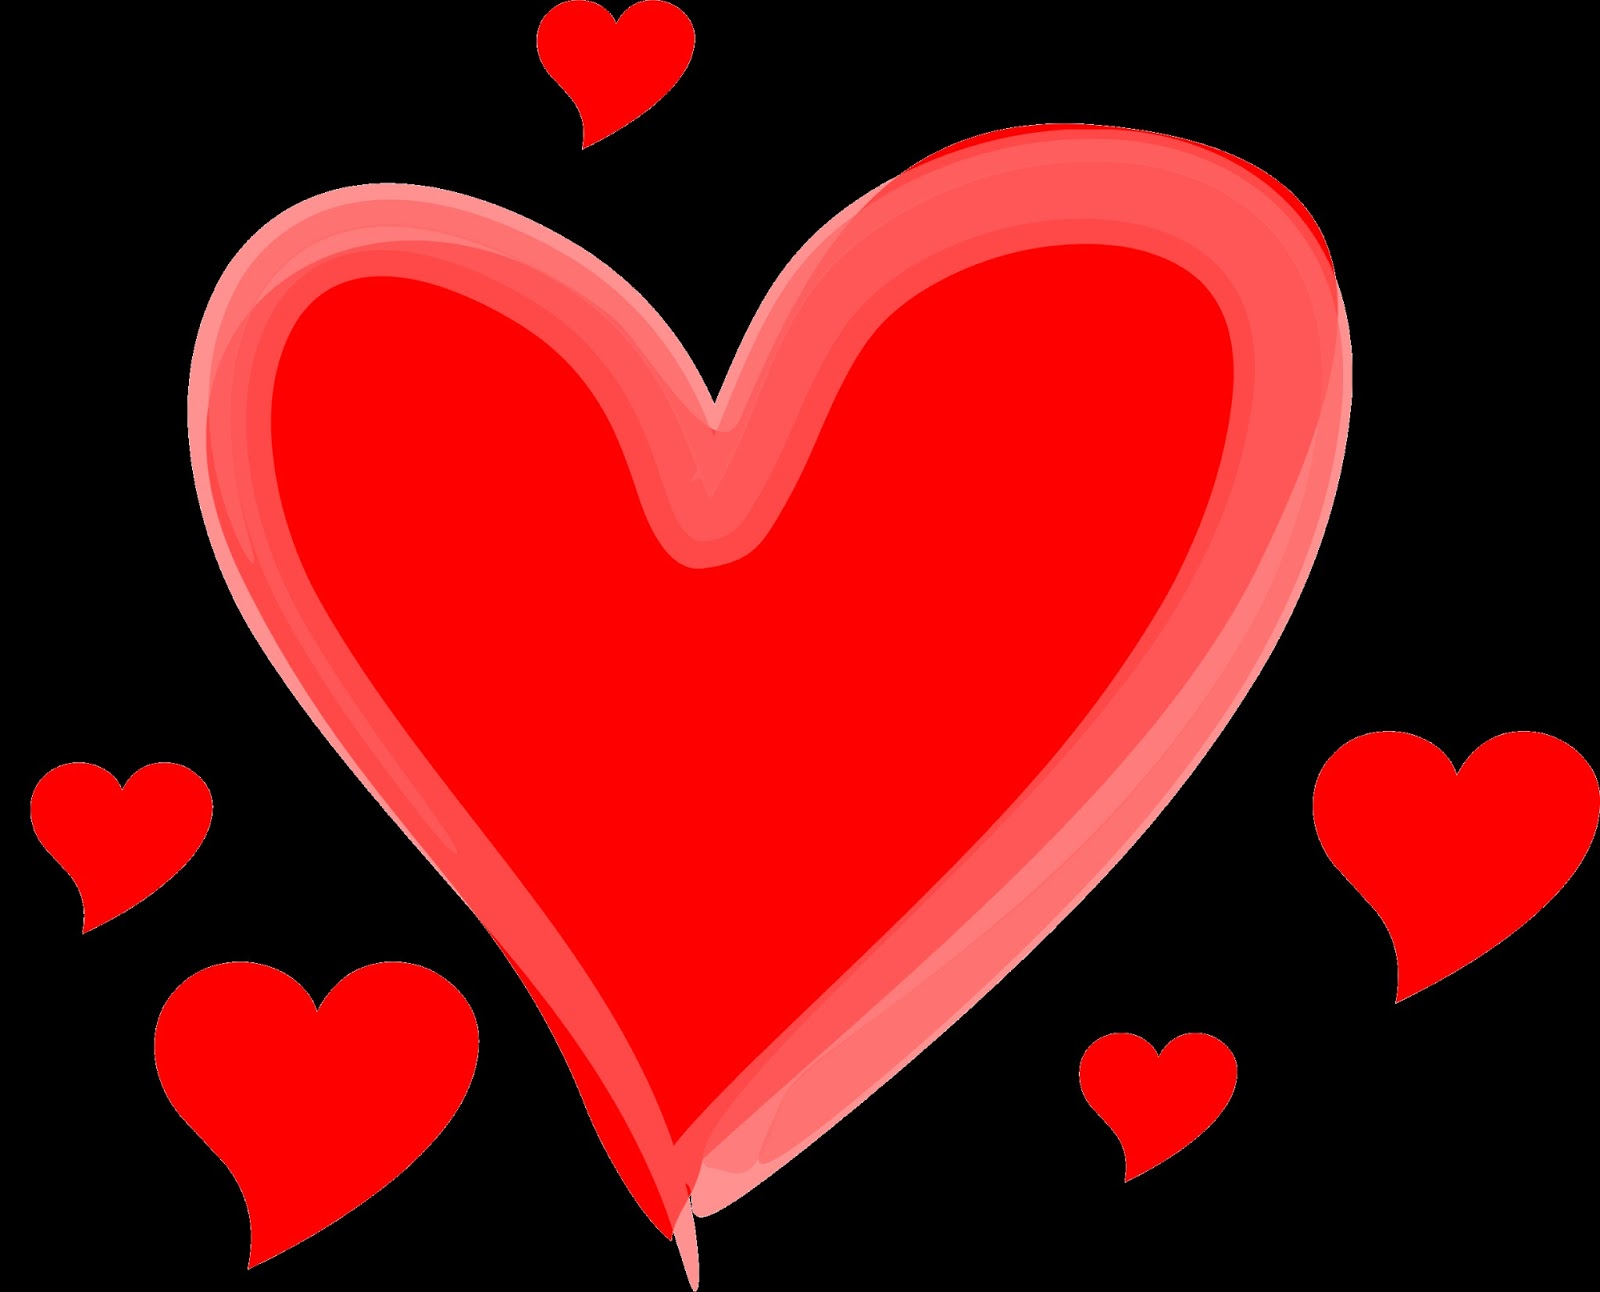 ... valentines day wallpapers,free valentines wallpapers,love wallpapers